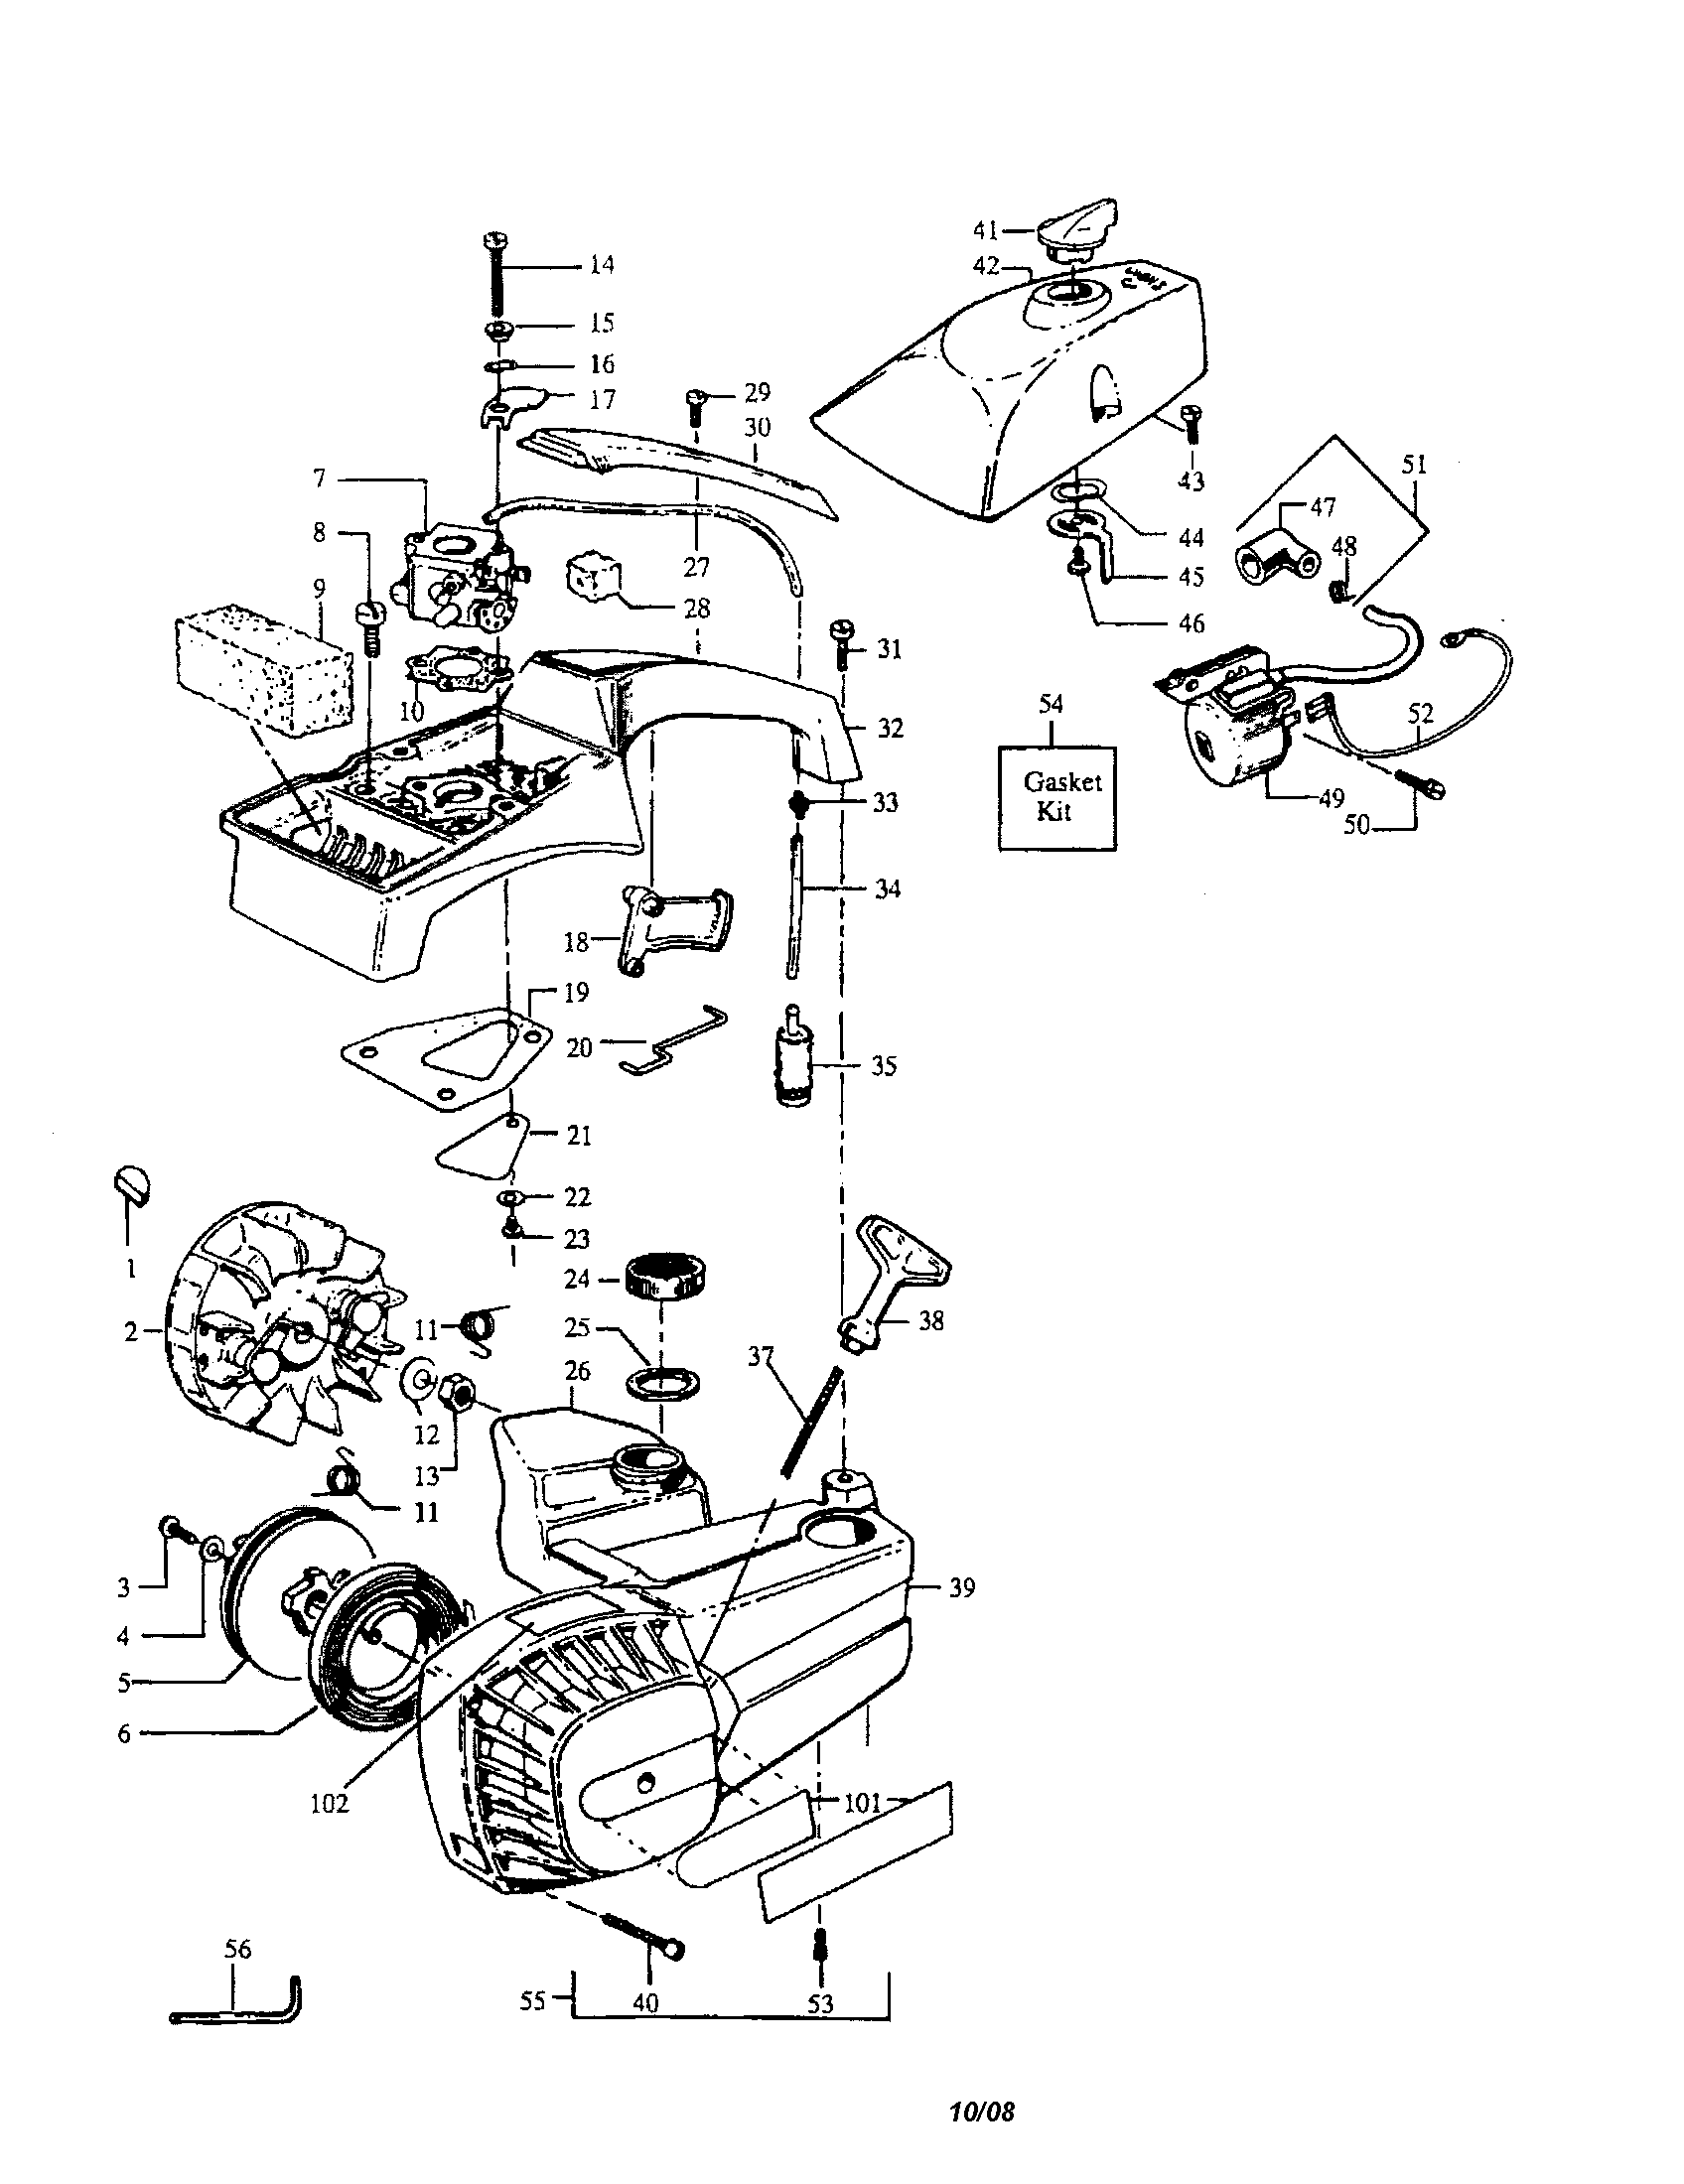 541zx poulan pole solenoid wiring diagram 3 online wiring diagram541zx poulan pole solenoid wiring diagram 3 best wiring librarypoulan chainsaw schematic chainsaw hydraulic schematic automotive